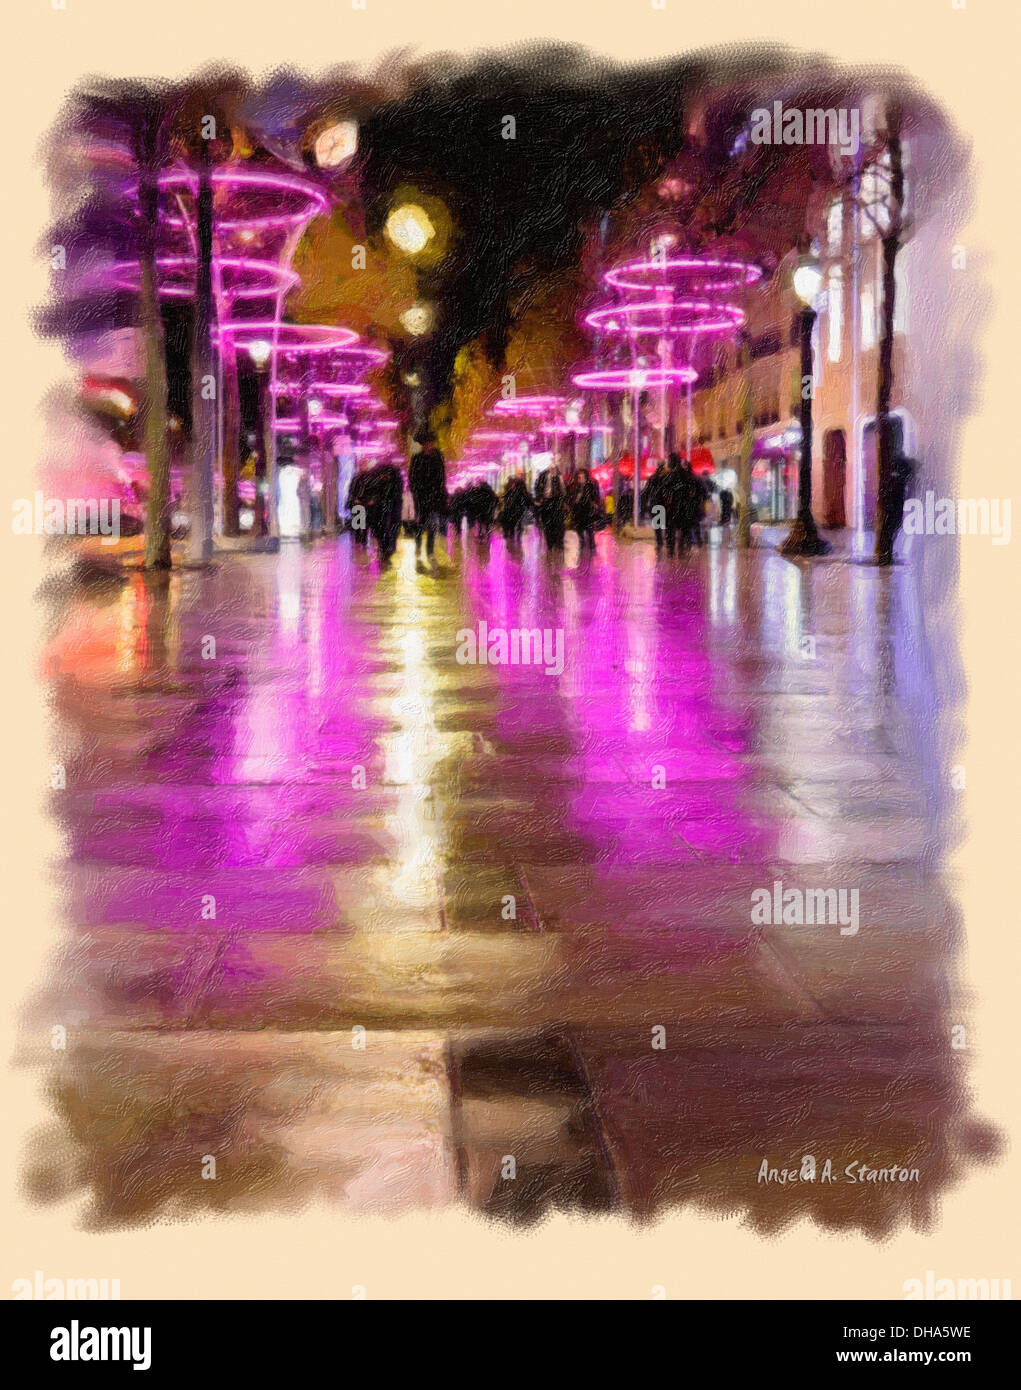 Computer Generated Image Of Pedestrians On A Walkway With Pink Neon Lights Reflecting On The Wet Pavement At Nighttime - Stock Image